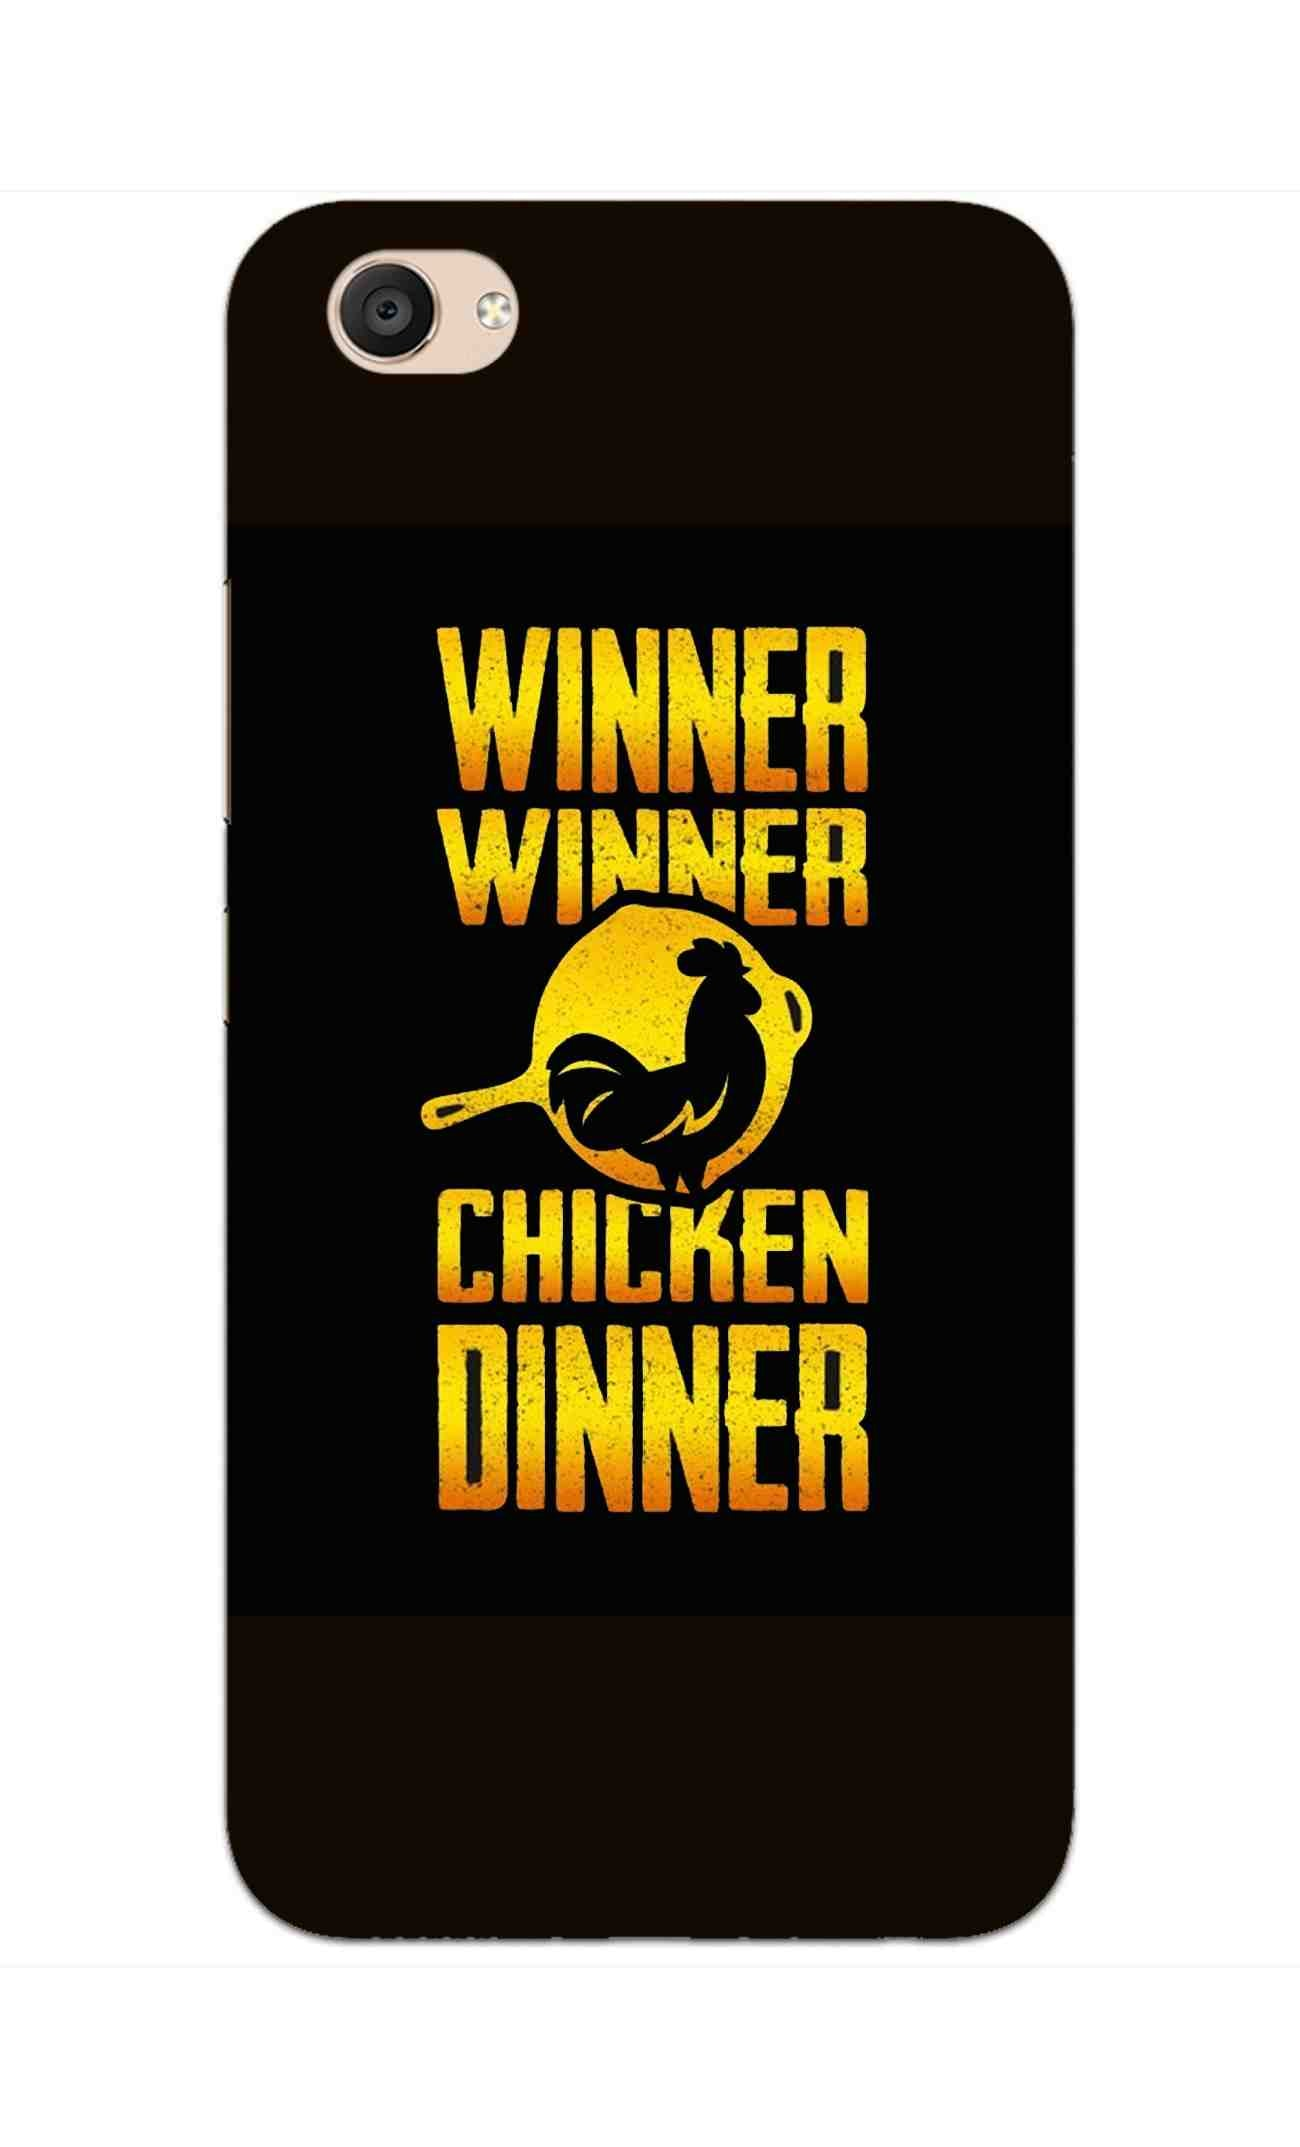 Chicken Dinner Pan For Winner Typography Vivo V5 Plus Mobile Cover Case - MADANYU